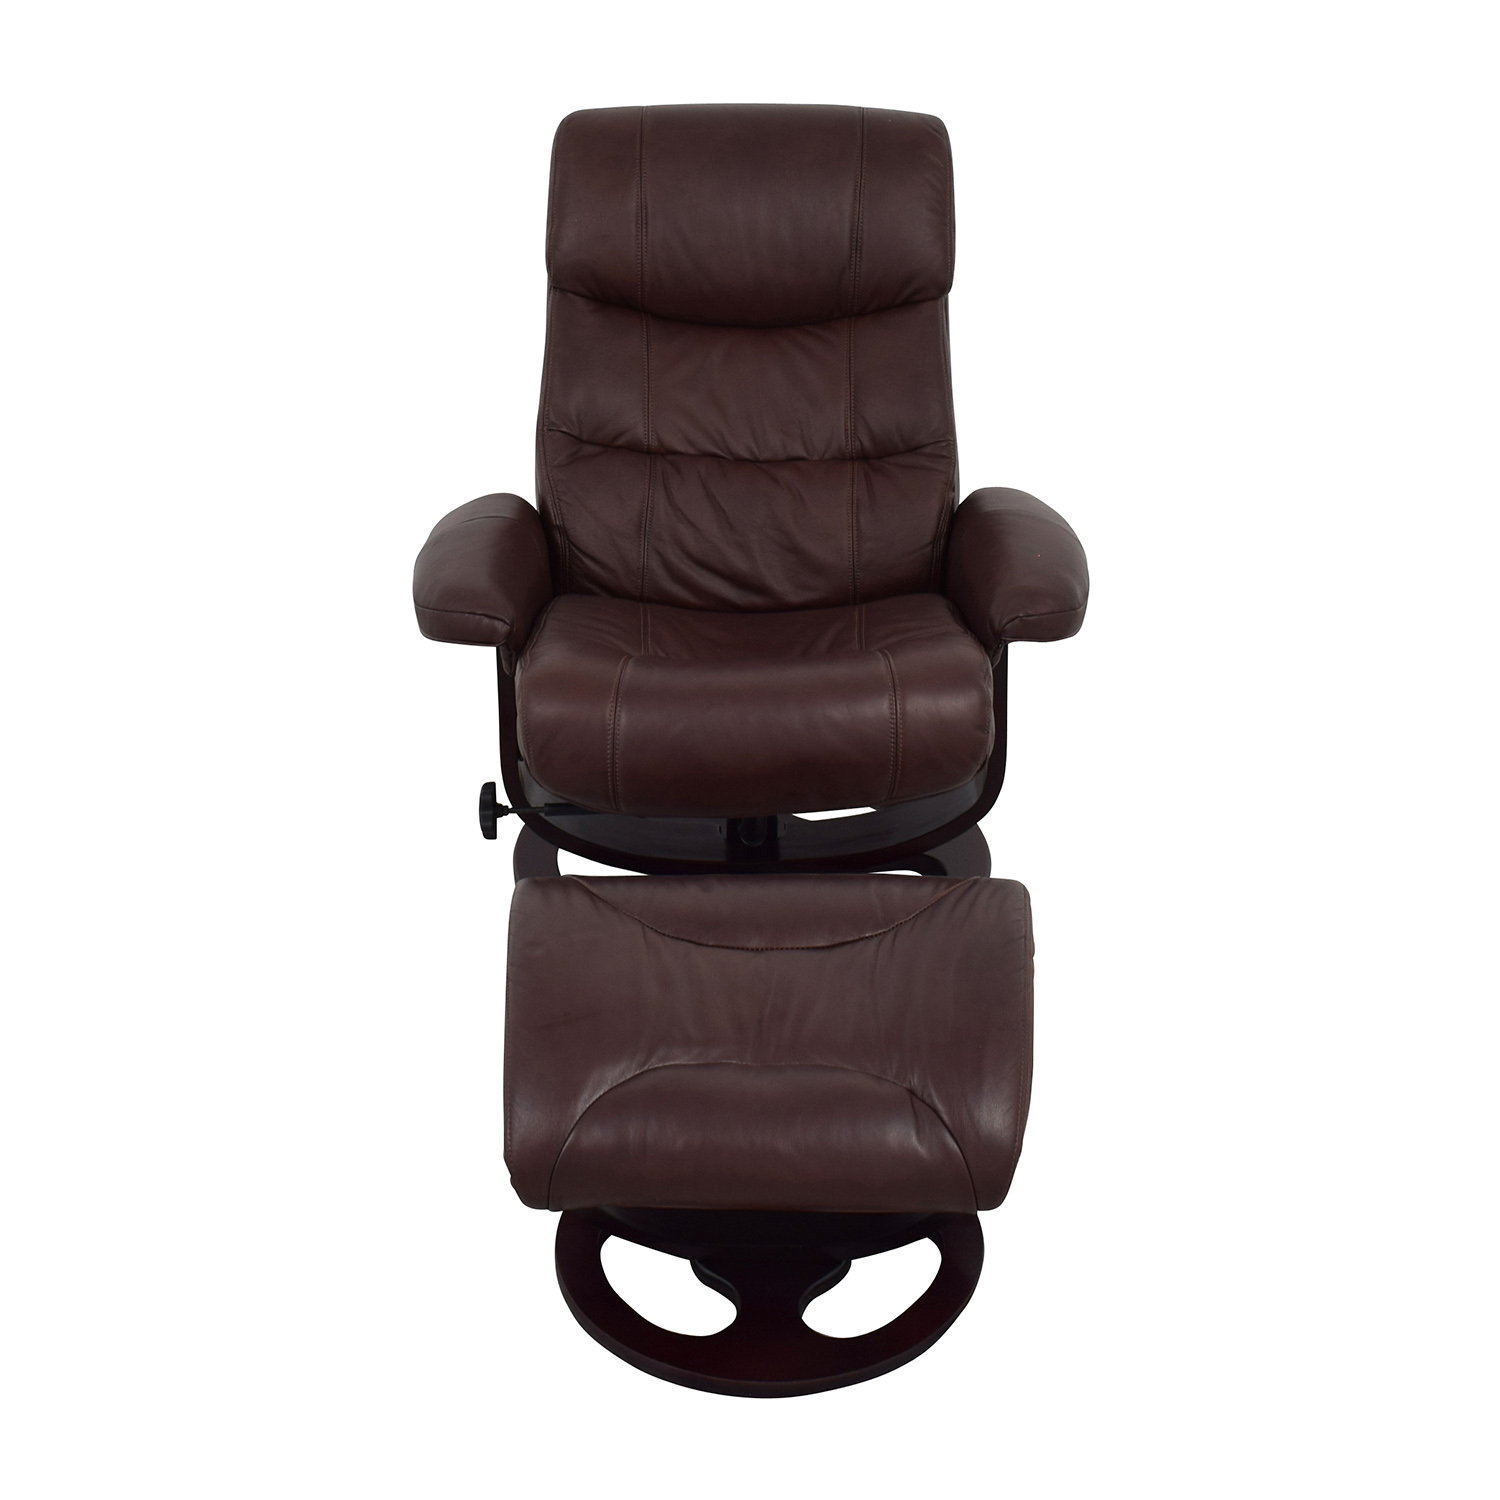 59% OFF - Macy's Macy's Aby Brown Leather Recliner Chair & Ottoman / Chairs